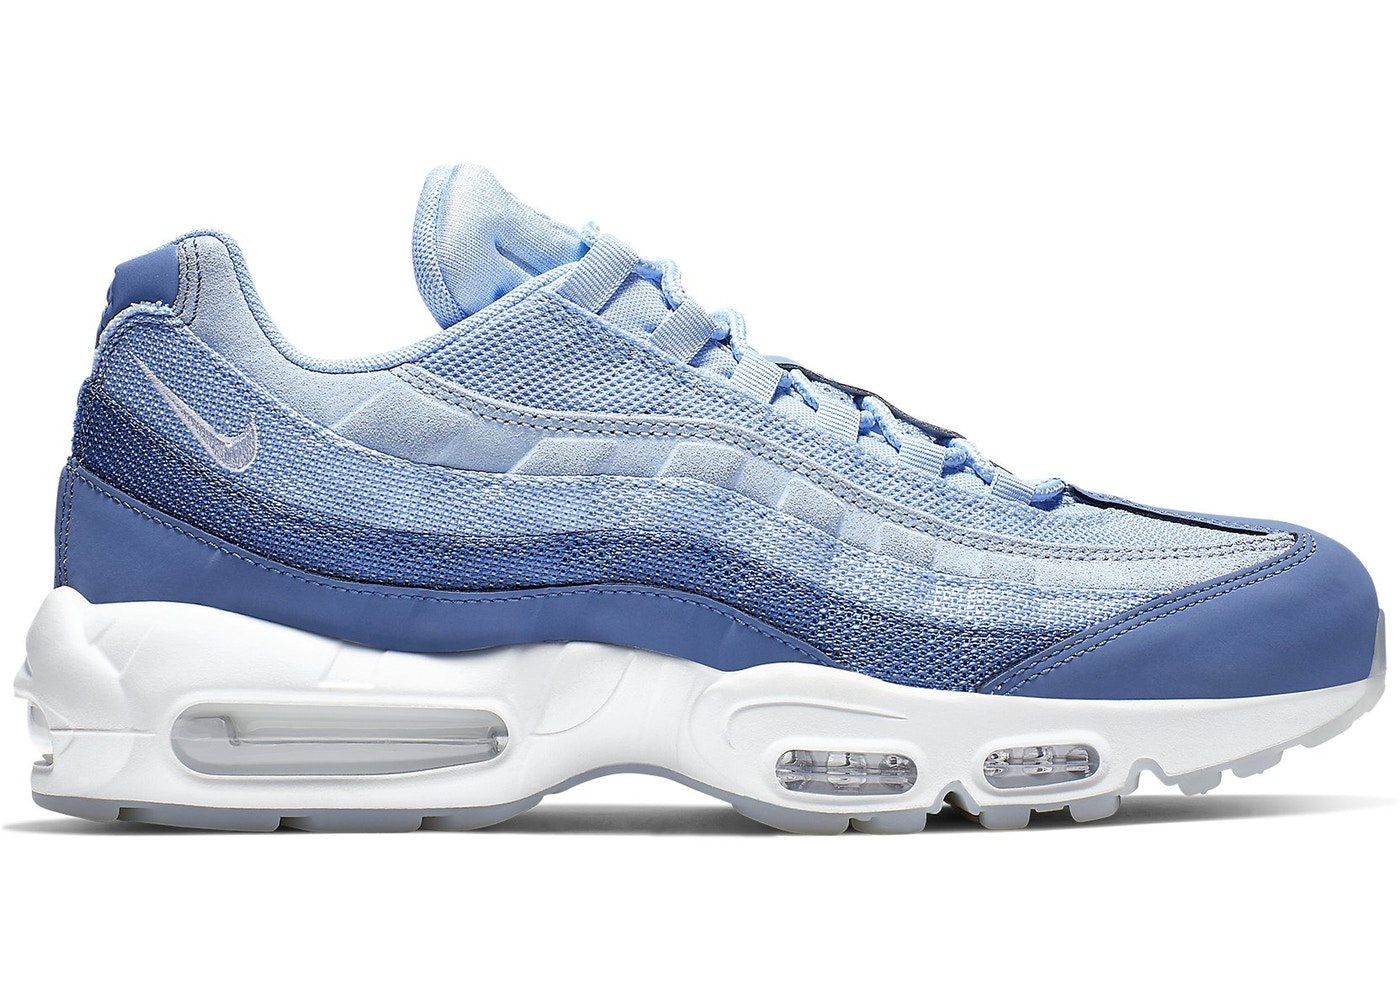 Nike Air Max 95 Shoes - Release Date 937f24778